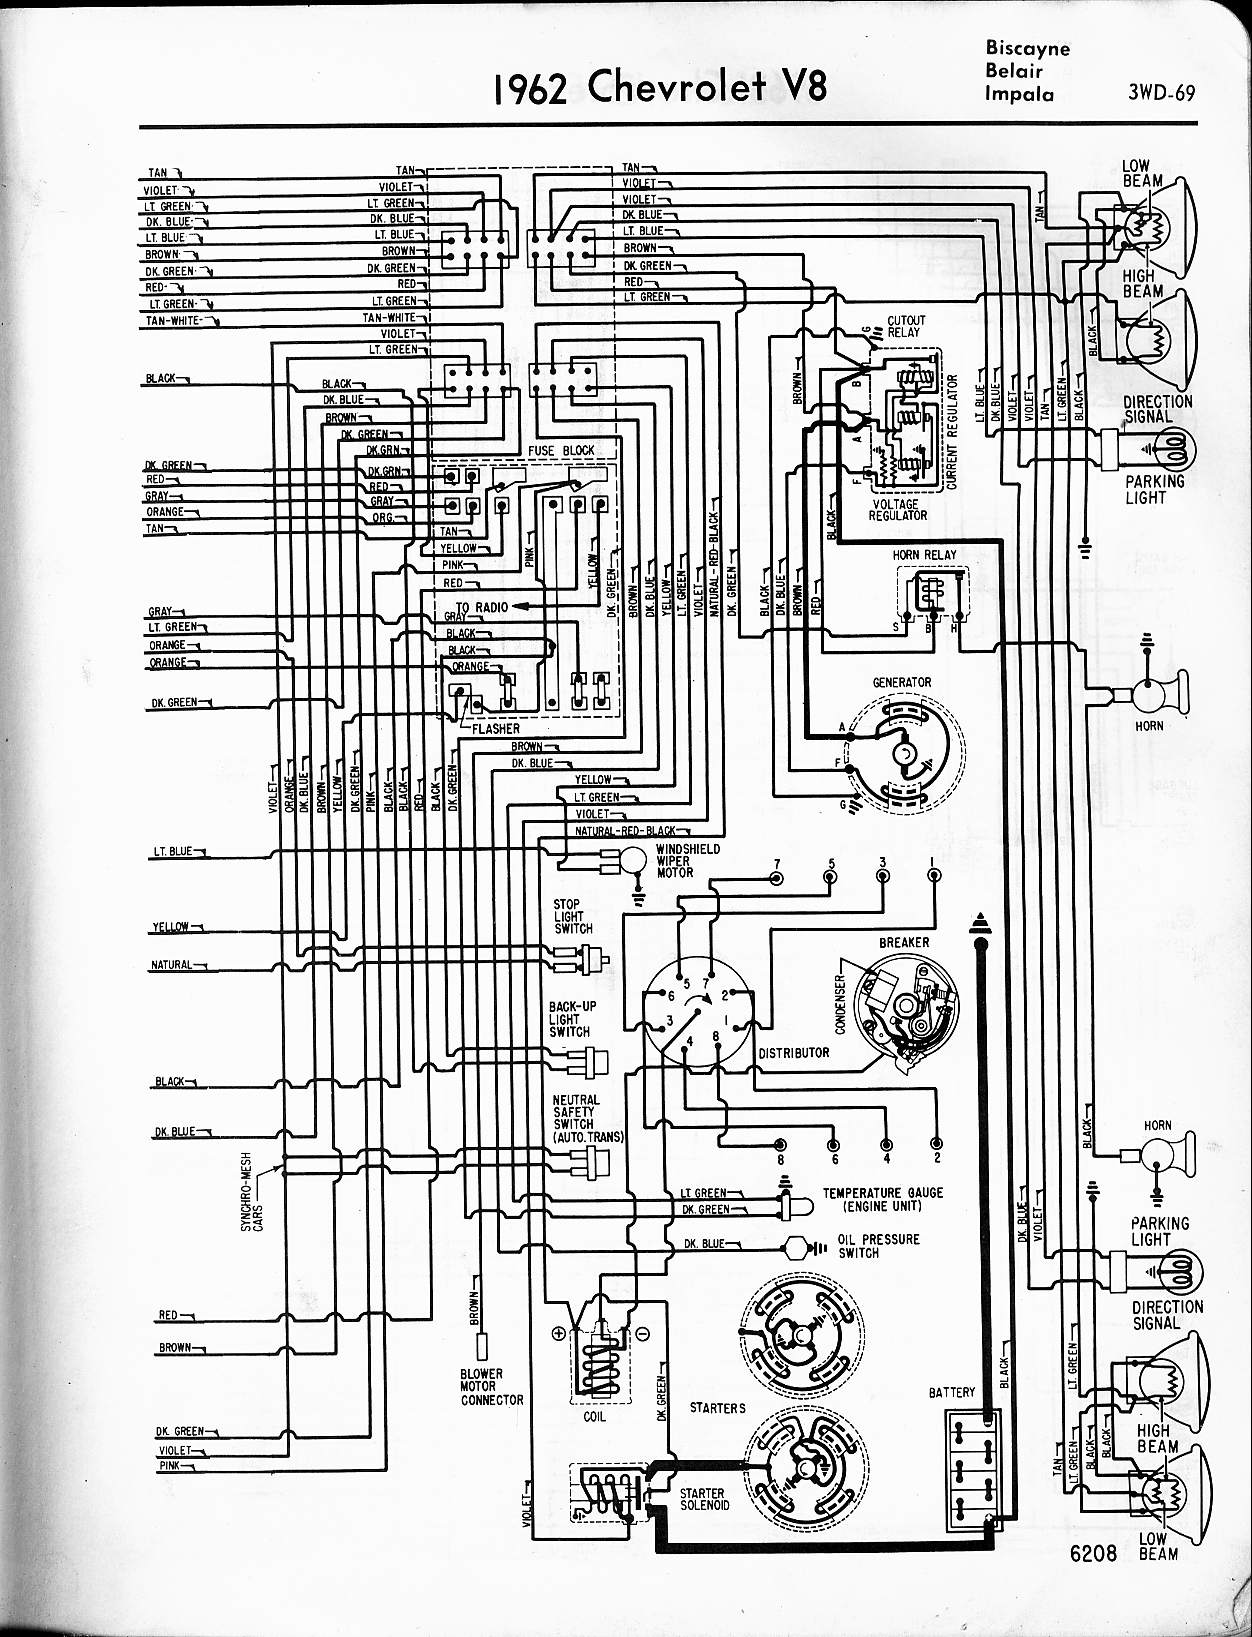 1965 chevy impala wiring diagram free download wiring diagram rh graphiko co